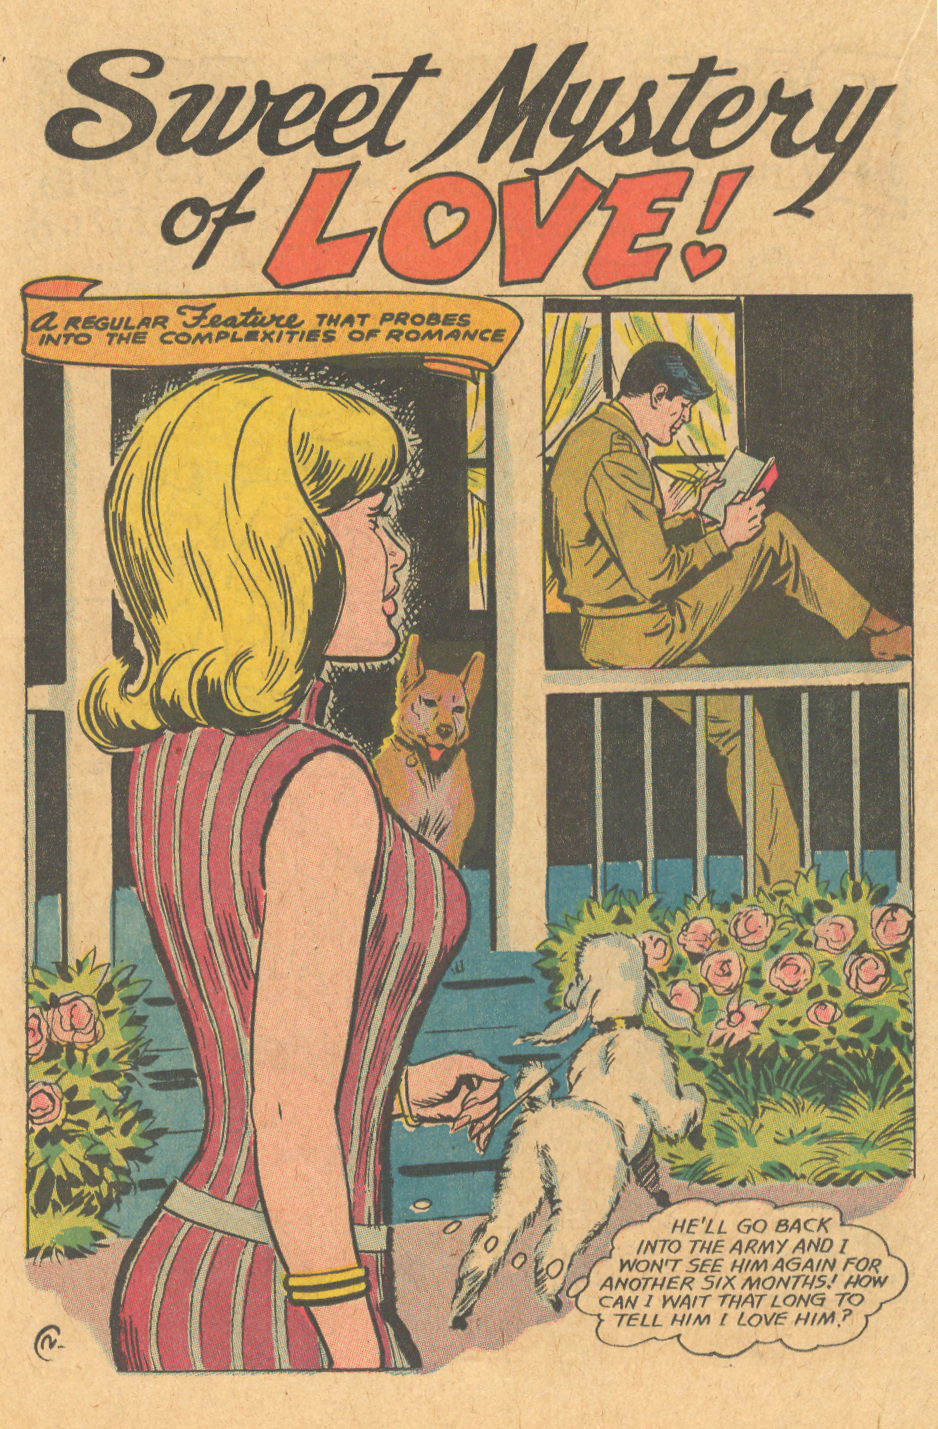 Puppy love romance comic book Nick Cardy illustrated romance story